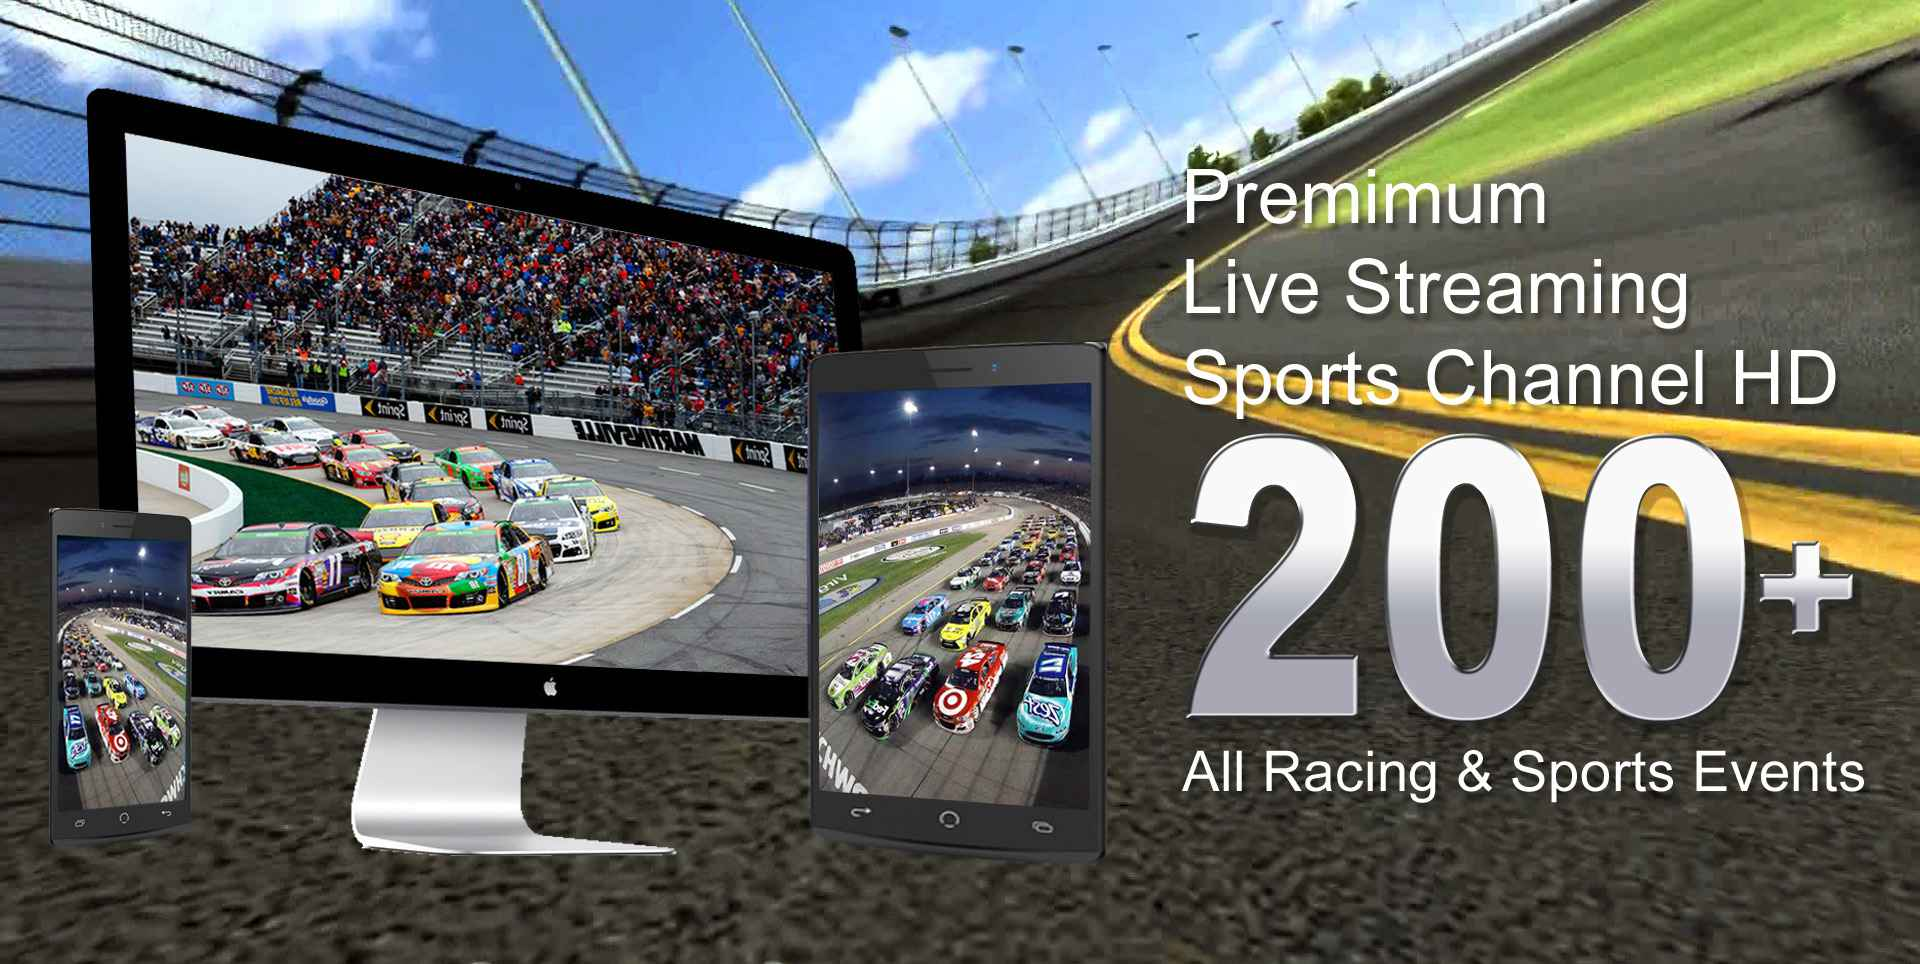 Nascar Live Truck Series, Sprint cup, Xfinity series